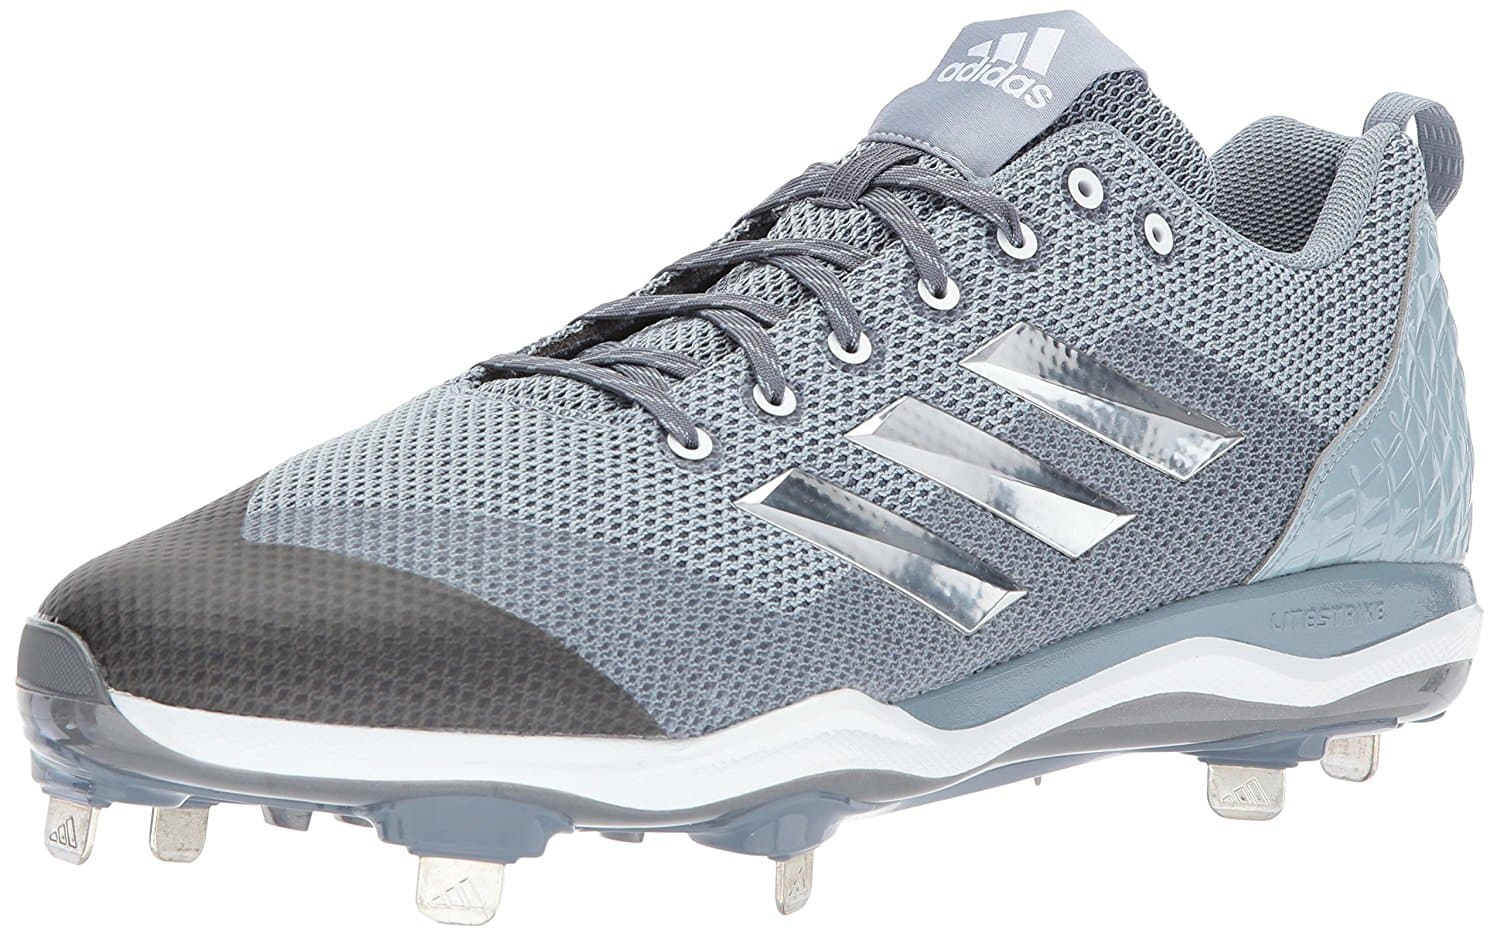 adidas Men's PowerAlley 5 Baseball Shoe, Onix/Silver/Grey (Size 17 Only) $12.35 + Free Prime Shipping